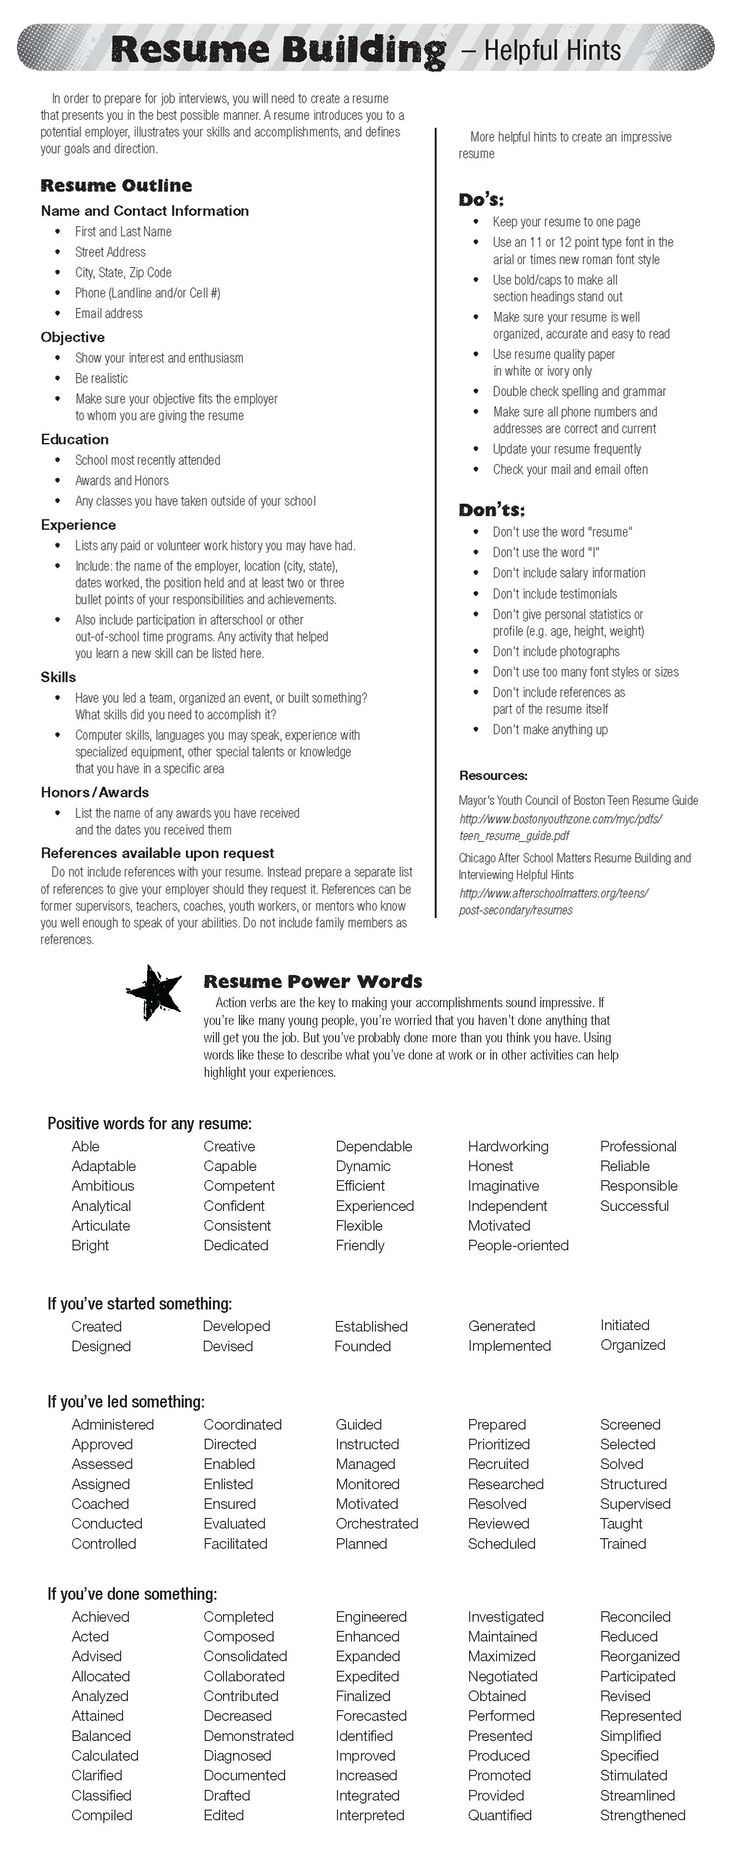 Opposenewapstandardsus  Pleasant  Ideas About Resume On Pinterest  Cv Format Resume Cv And  With Foxy  Ideas About Resume On Pinterest  Cv Format Resume Cv And Resume Templates With Lovely Personal Interests On Resume Also Free Resume Outline In Addition Medical Coding Resume And Administrative Assistant Resume Summary As Well As Pharmacist Resume Sample Additionally Online Resume Website From Pinterestcom With Opposenewapstandardsus  Foxy  Ideas About Resume On Pinterest  Cv Format Resume Cv And  With Lovely  Ideas About Resume On Pinterest  Cv Format Resume Cv And Resume Templates And Pleasant Personal Interests On Resume Also Free Resume Outline In Addition Medical Coding Resume From Pinterestcom